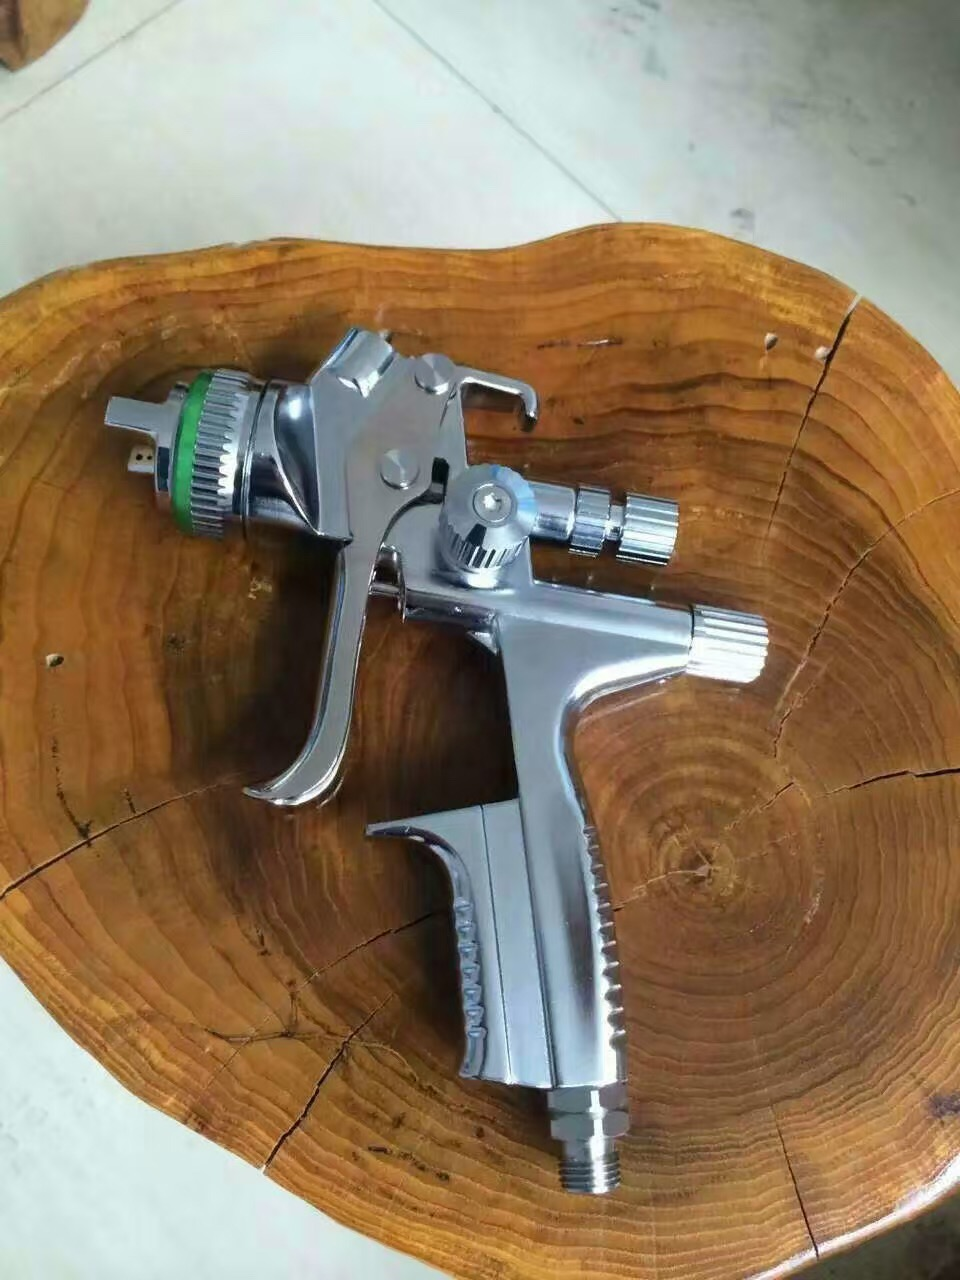 HIGH QUALITY JET5000B-120 HVLP PROFESSIONAL GRAITY Feed SPRAY GUN with 1.3mm nozzle air pneumatic spray gun car body painting